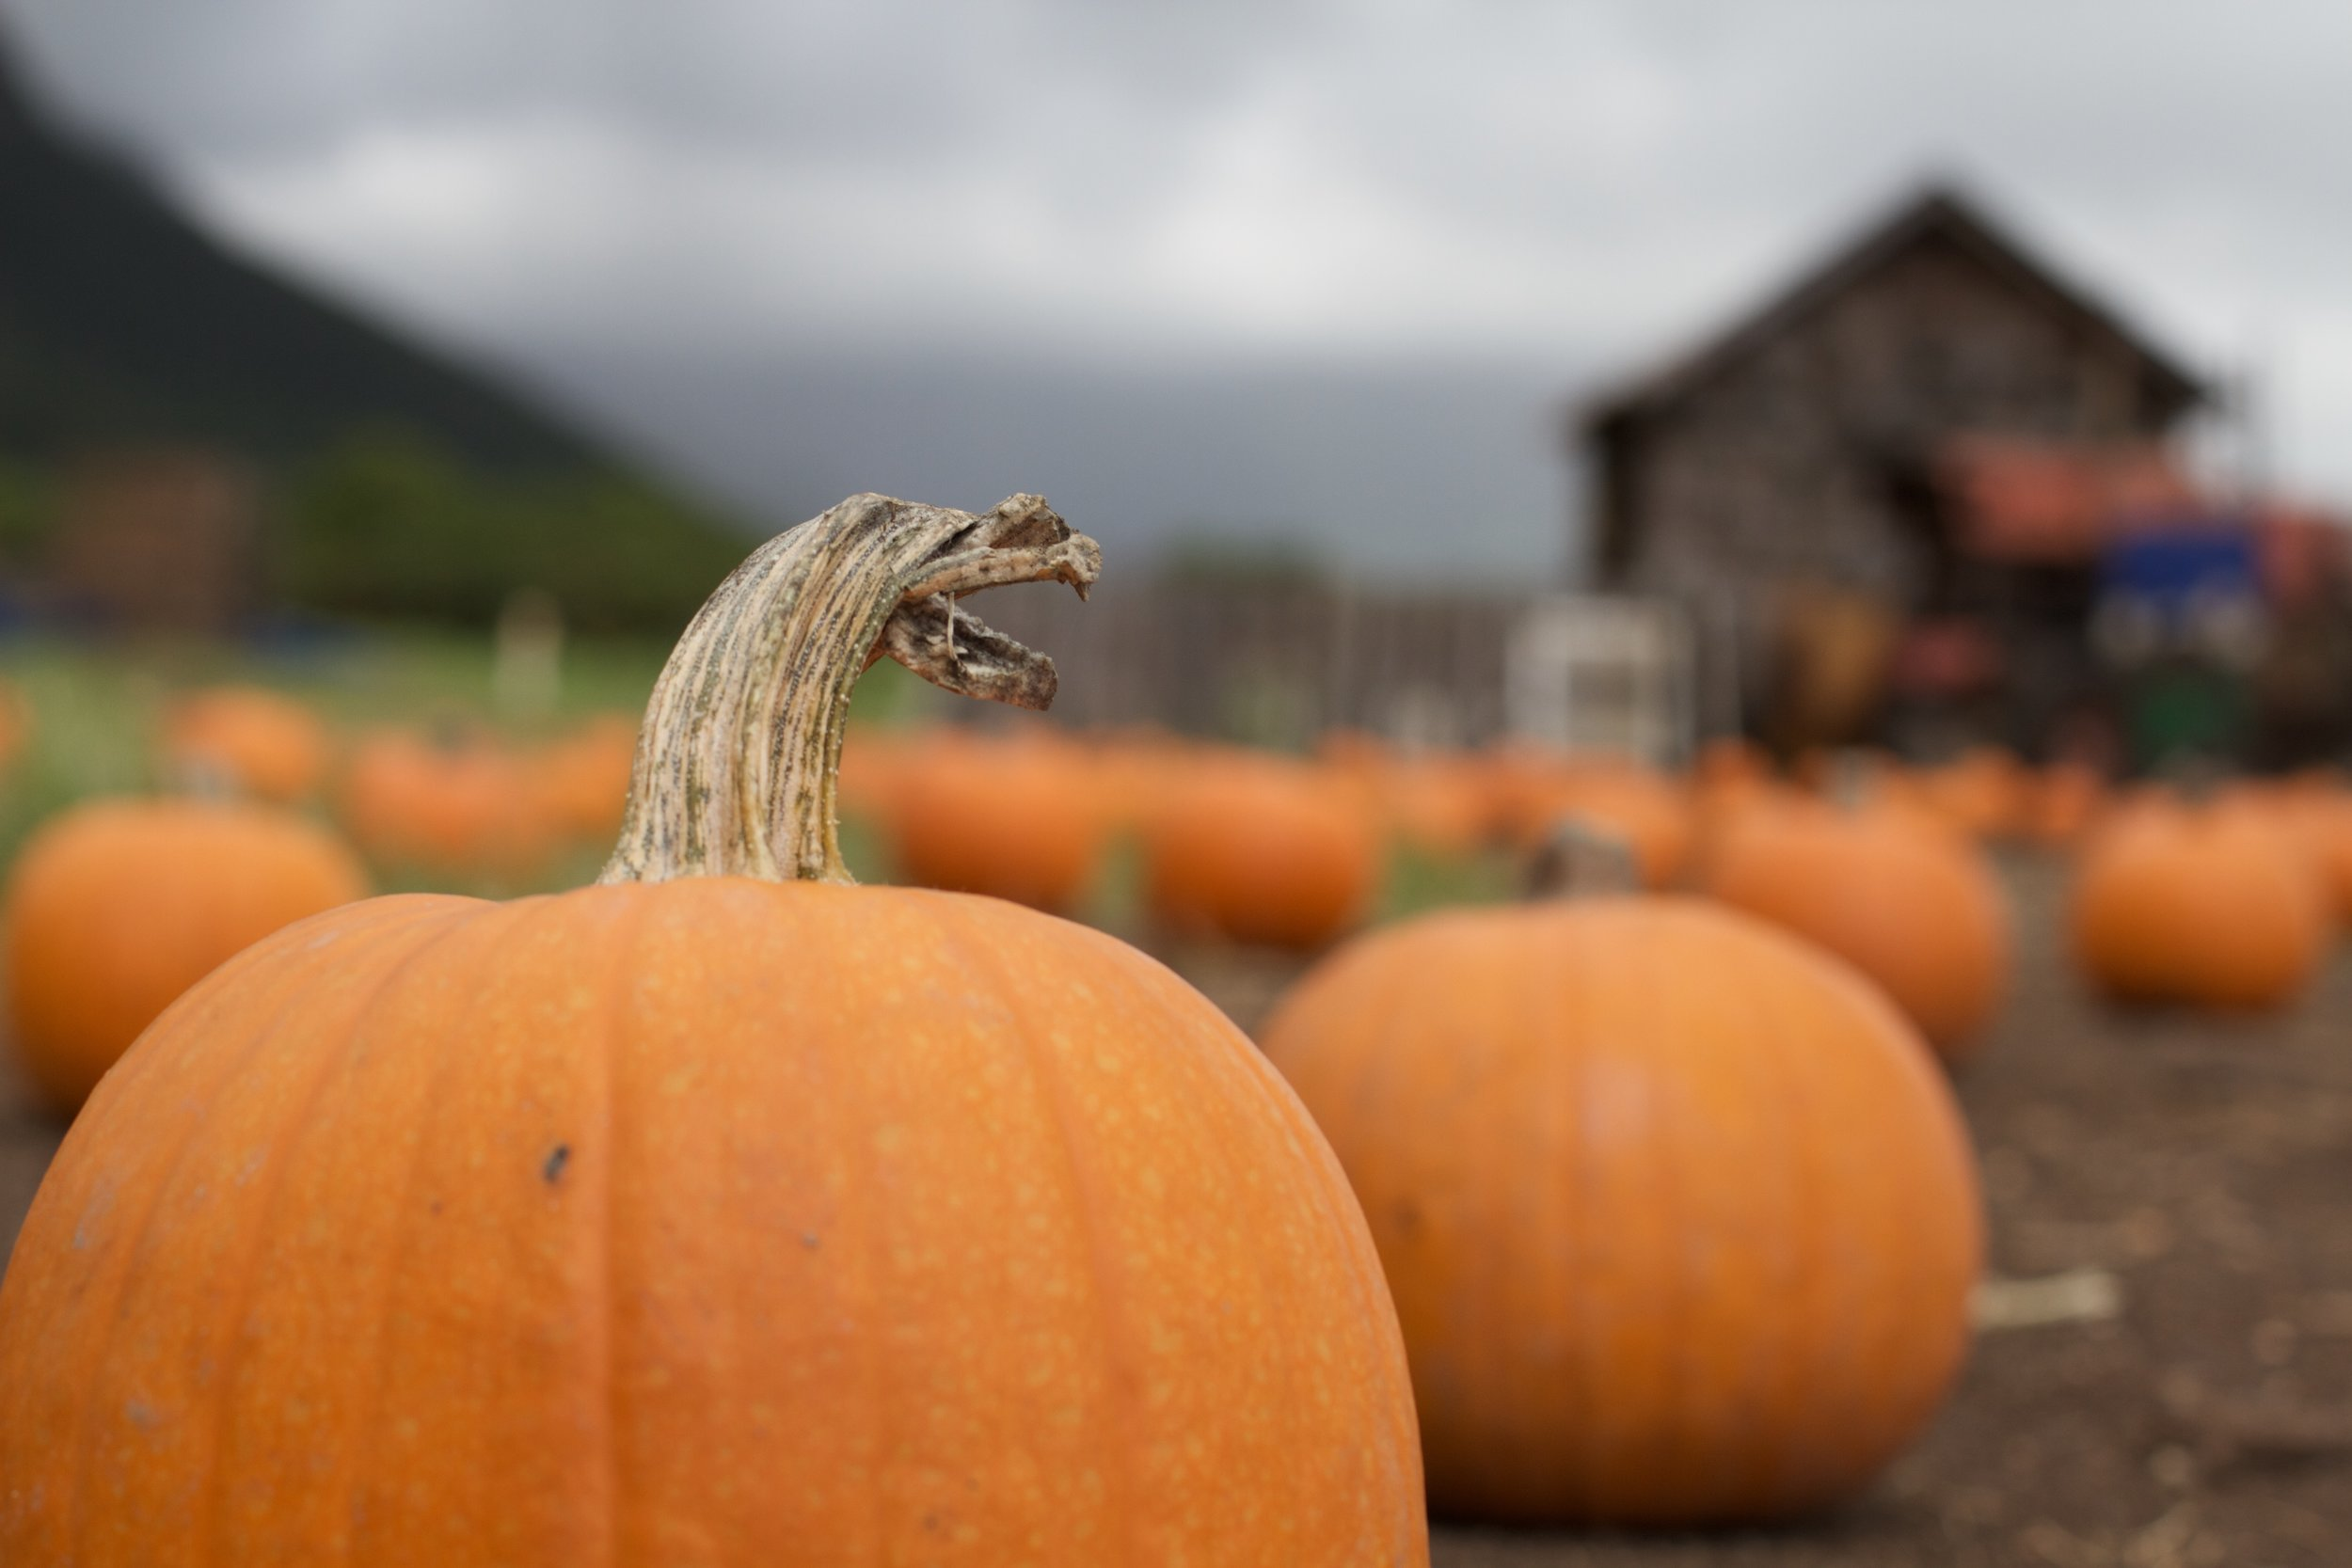 Pumpkins - From pie pumpkins to giant ones, you can find these during our pumpkin patch throughout October.